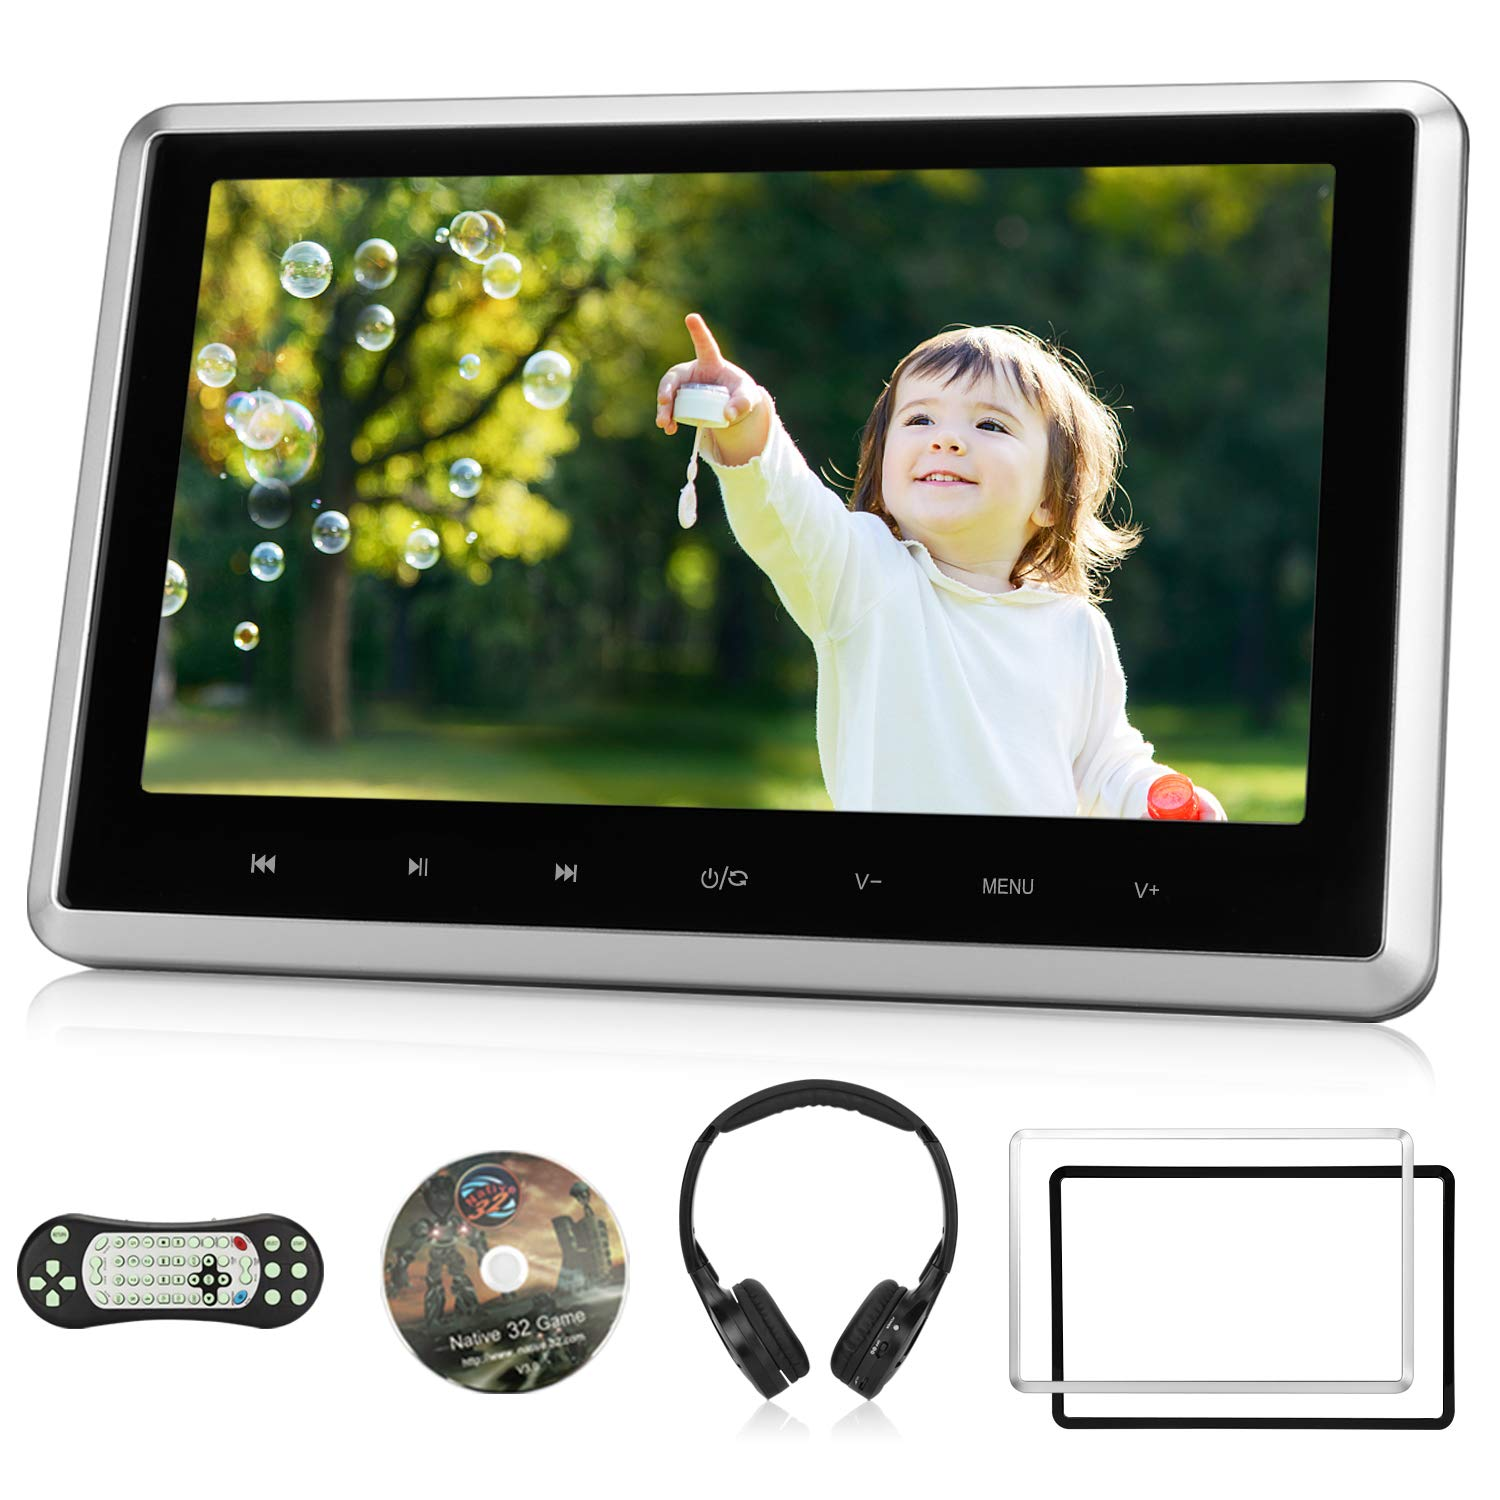 10.1'' Car Headrest DVD Player with Wireless Headphone Support 1080P Video, HDMI Input, Sync Screen, USB SD, AV Out & in, Last Memory - NAVISKAUTO